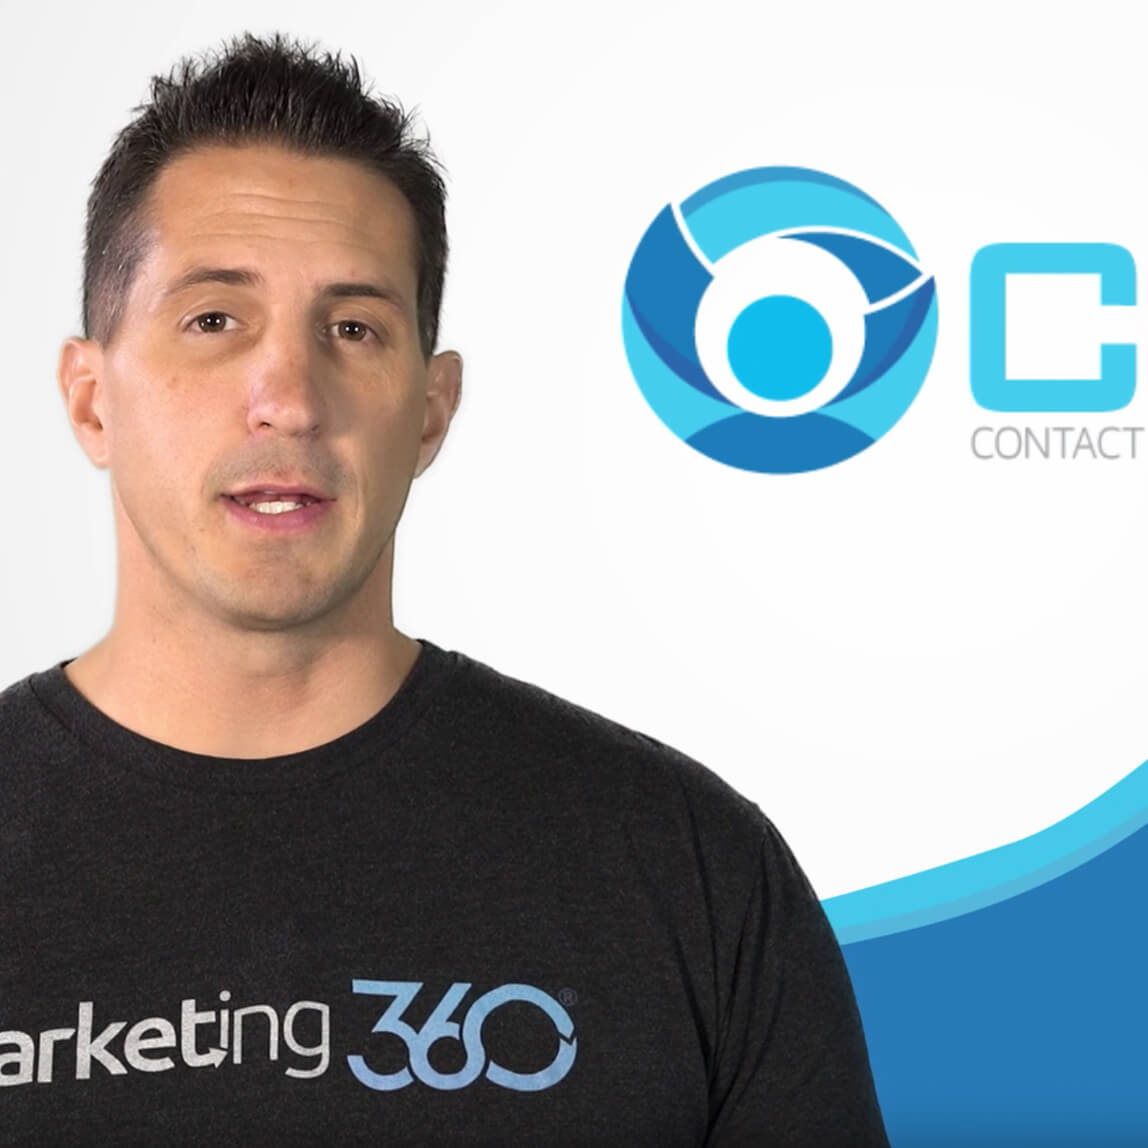 Learn more about Marketing 360® and Clover